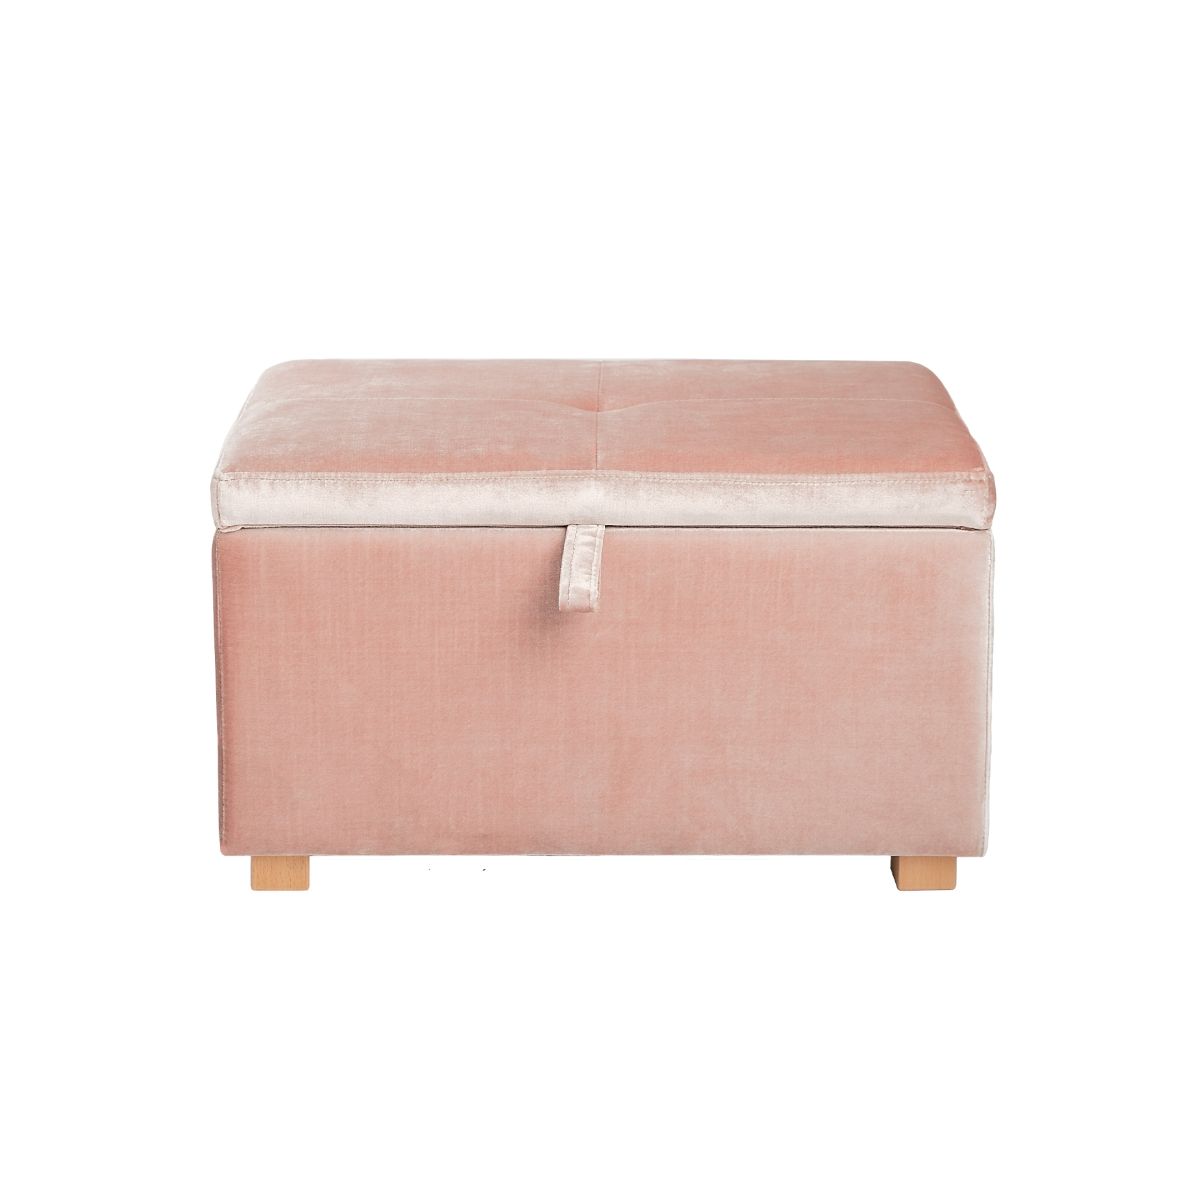 Gaia Baby Footstool-Antique Rose (NEW)